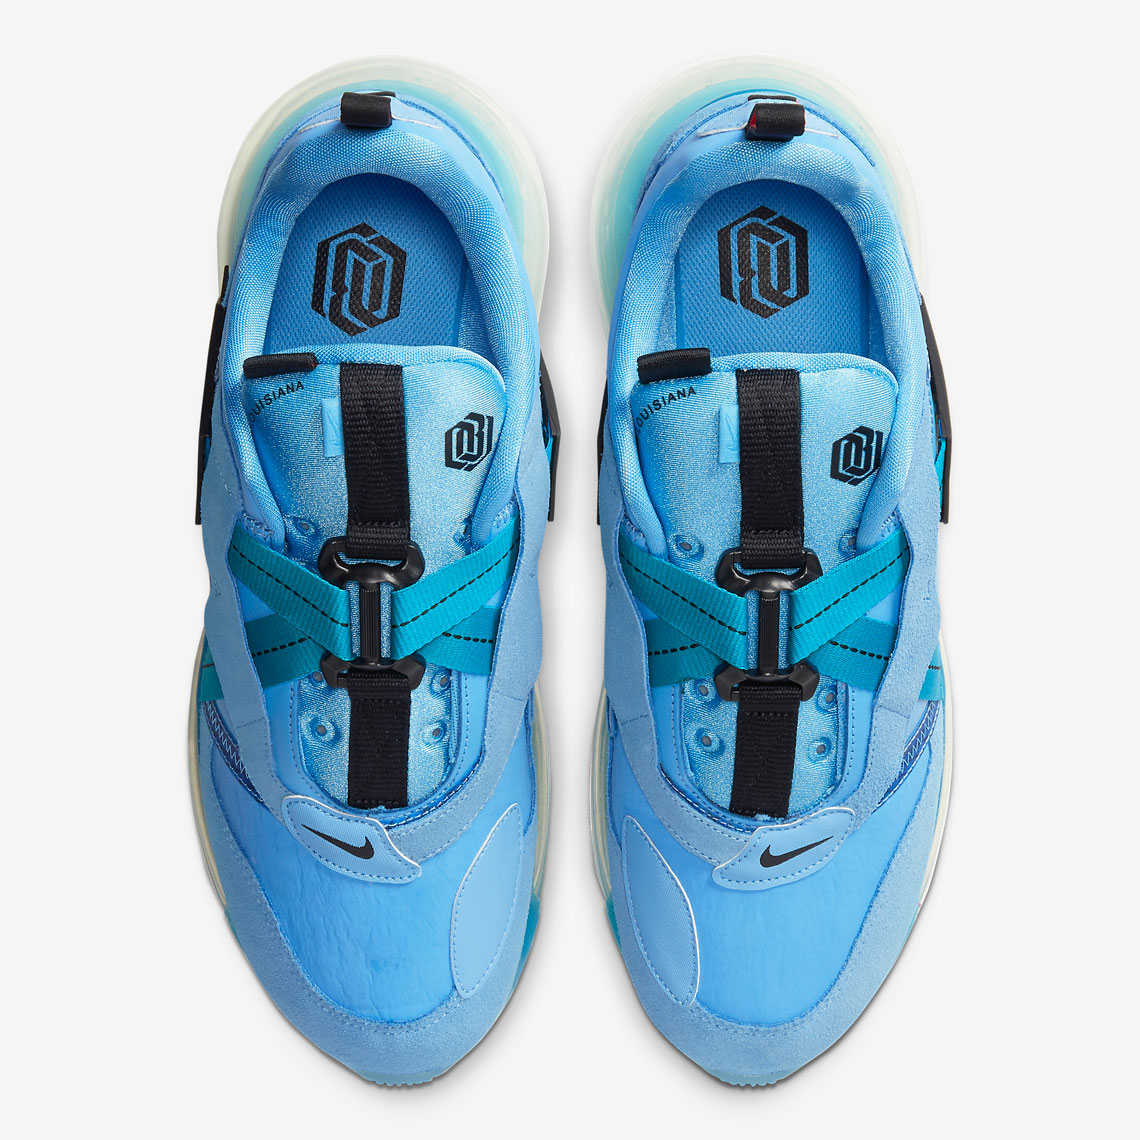 OBJ's Nike Air Max 720 Slip Receives Vibrant Blue Makeover: Photos